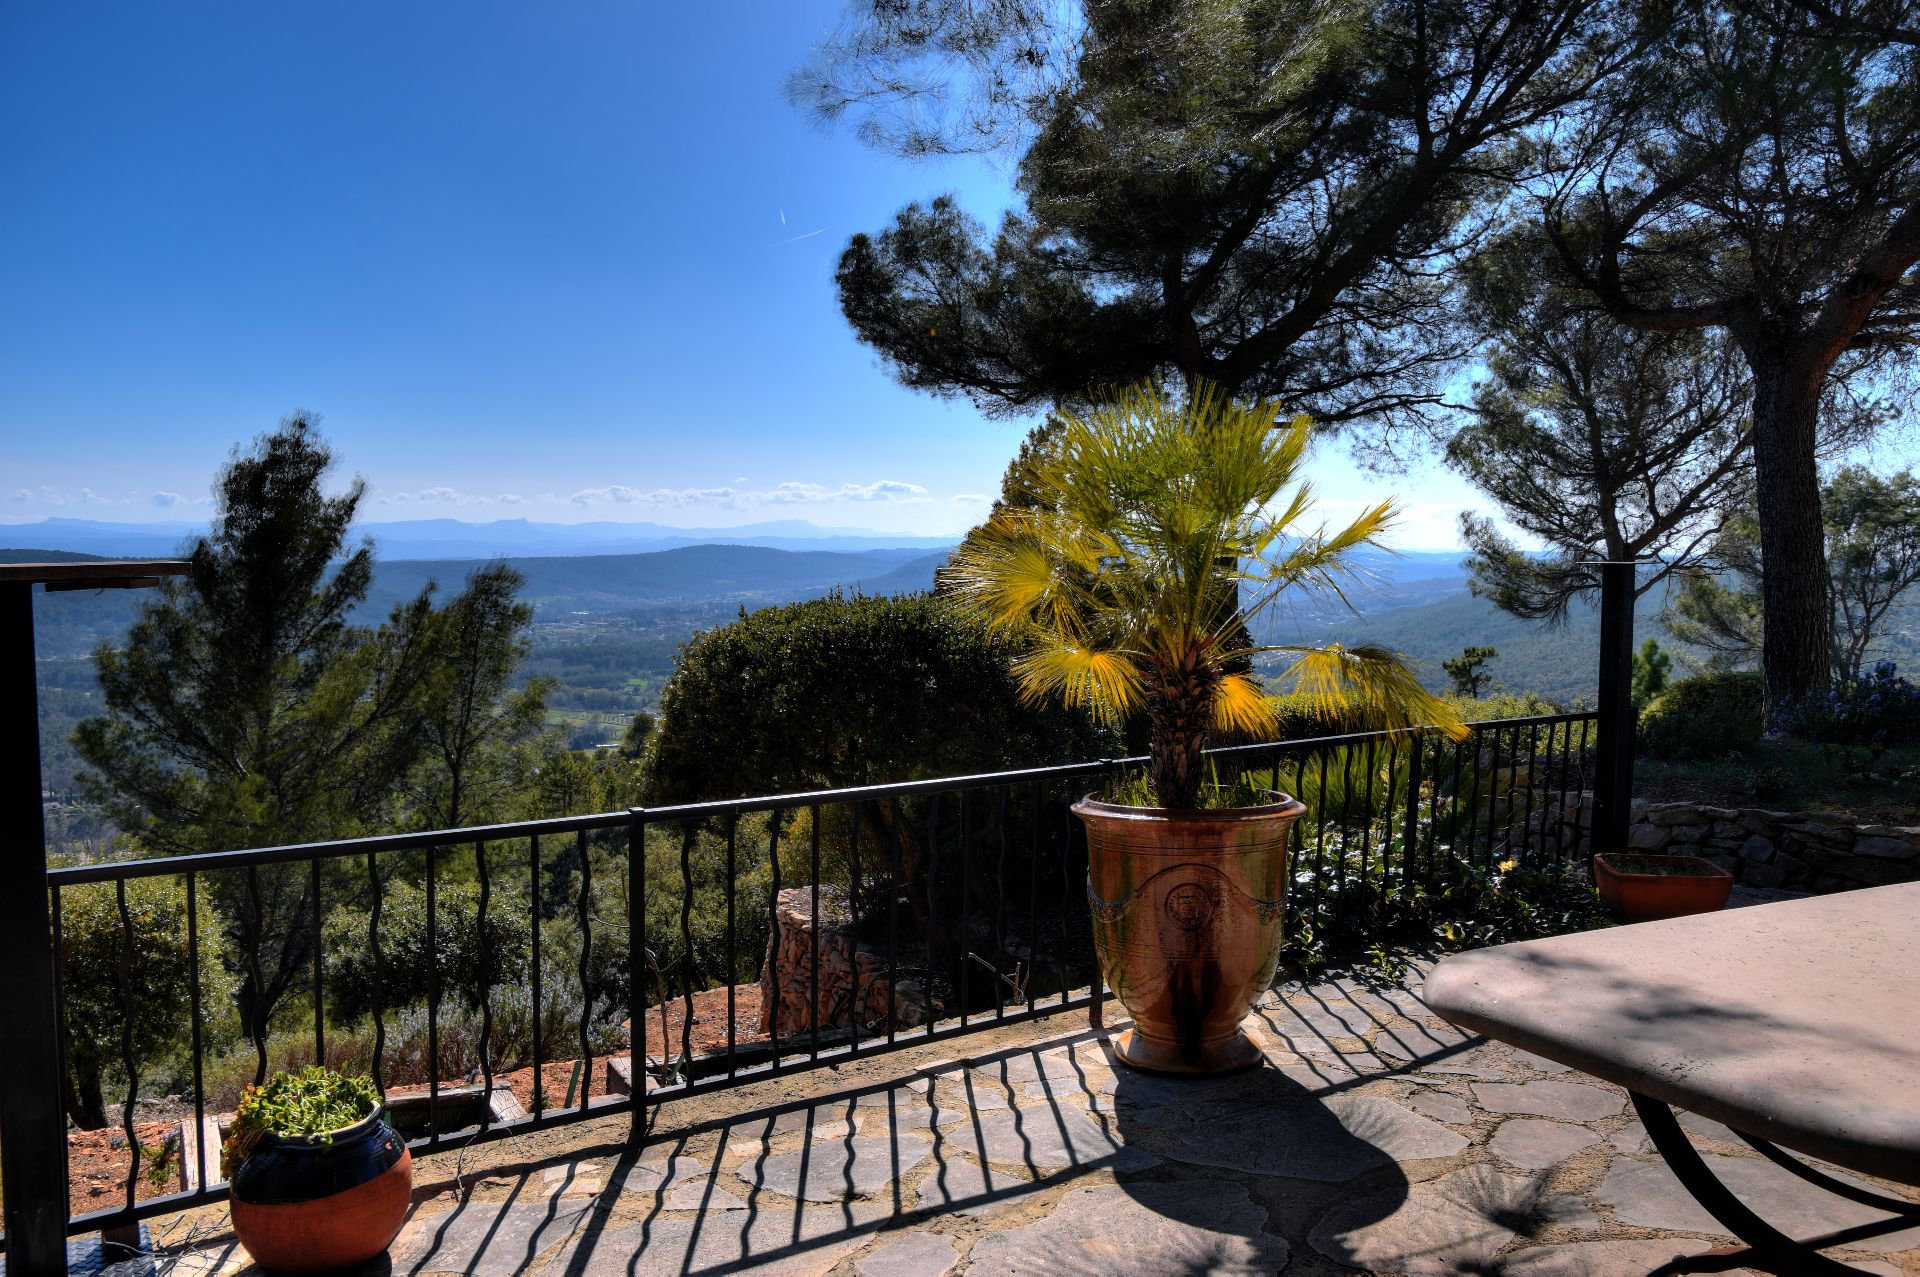 Property in the sky ... Tourtour, Var, Provence